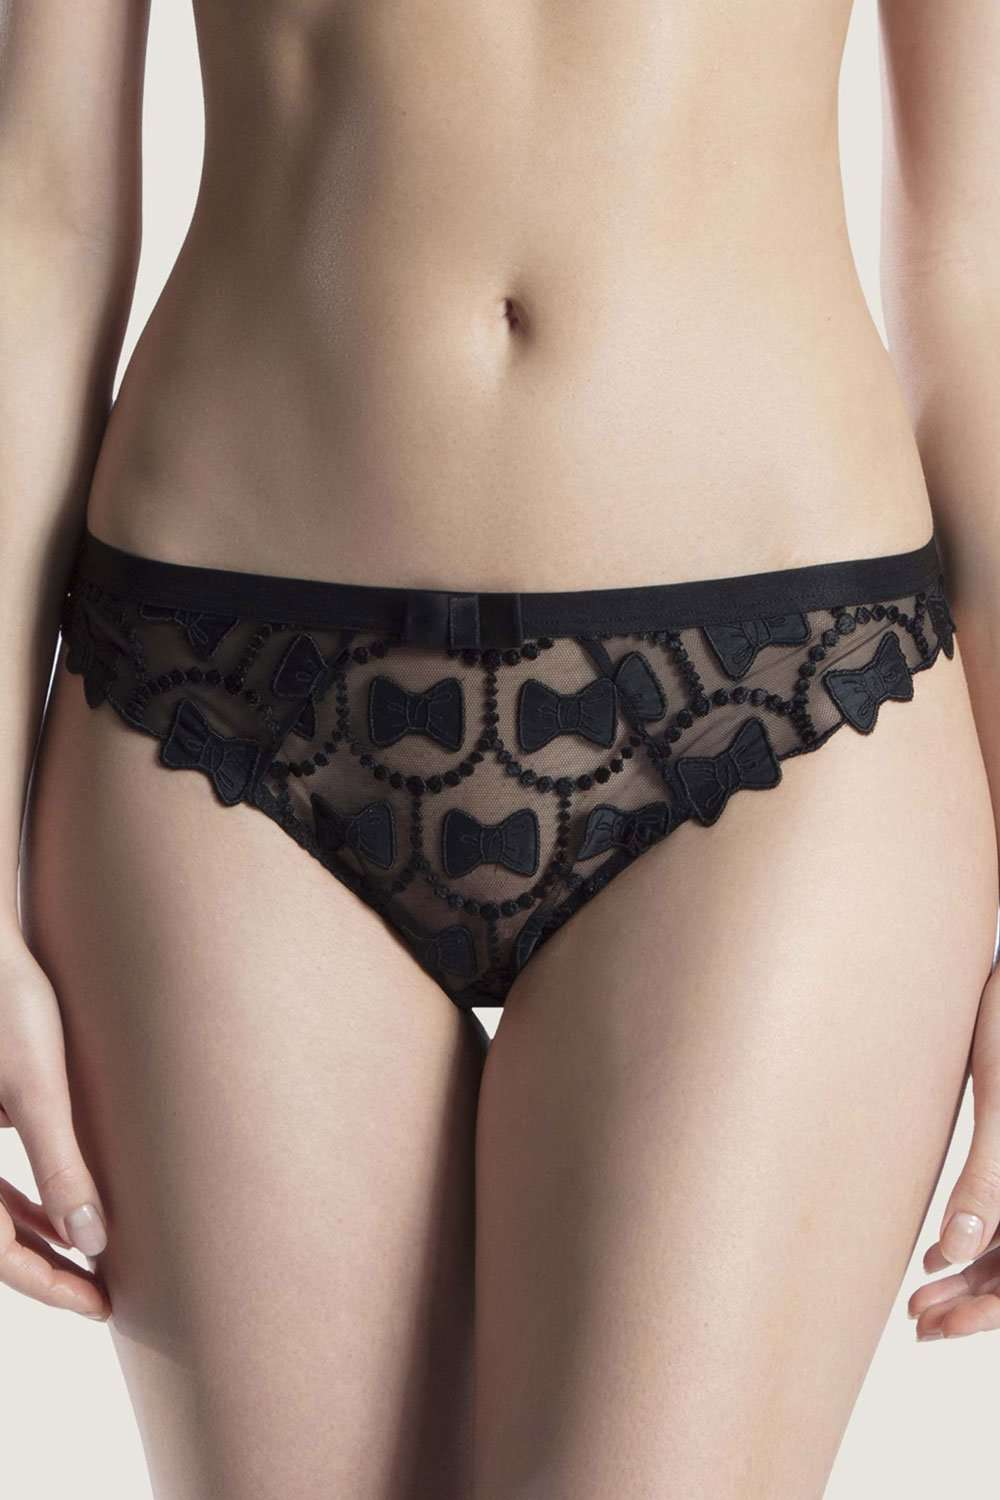 Viktor&Rolf X Aubade Bow Tanga - Naughty Knickers